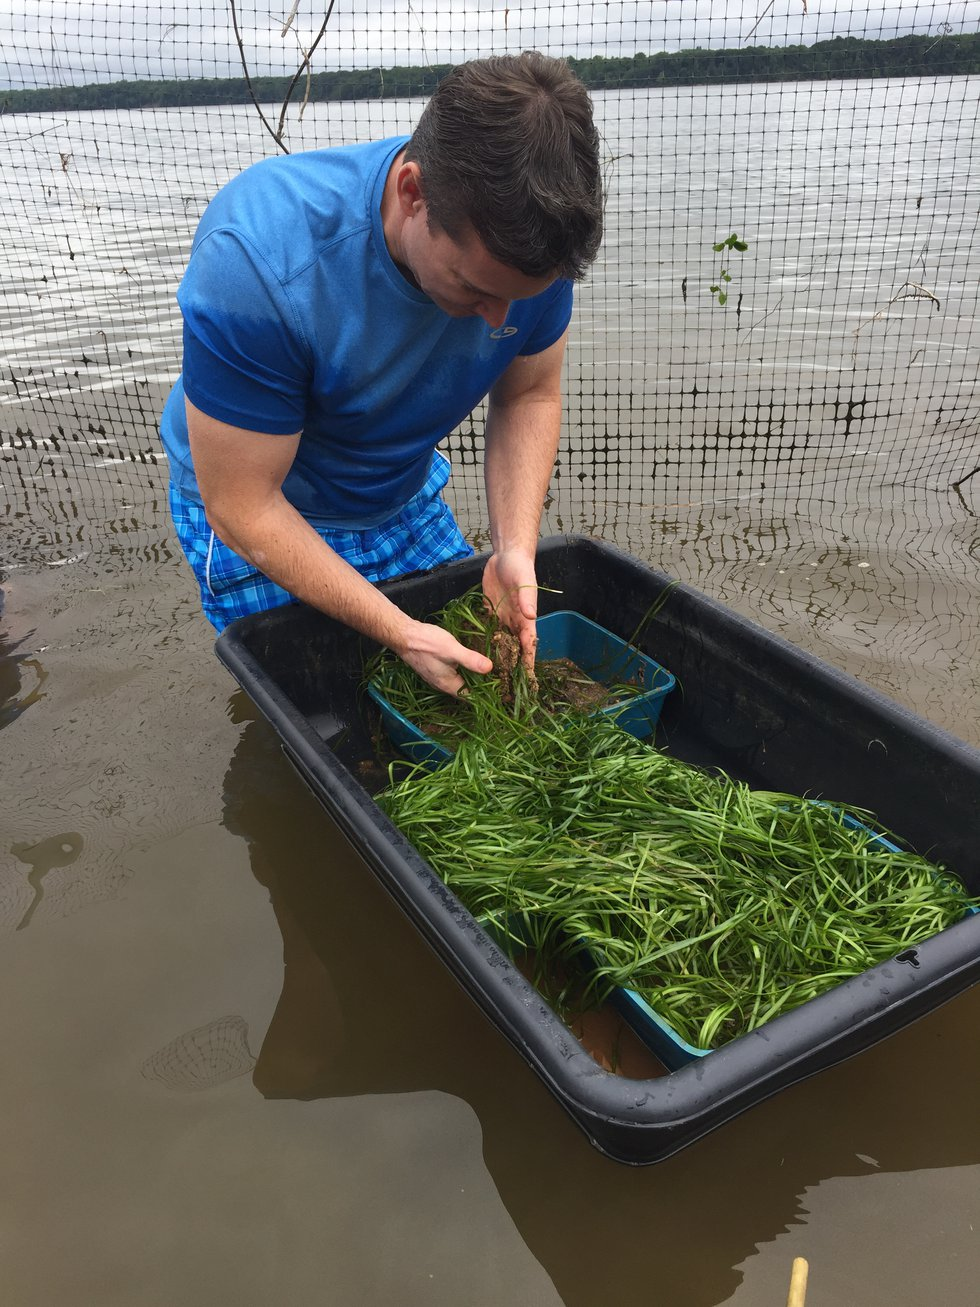 The Chesapeake Bay Foundation is looking for volunteers to grow underwater grass.